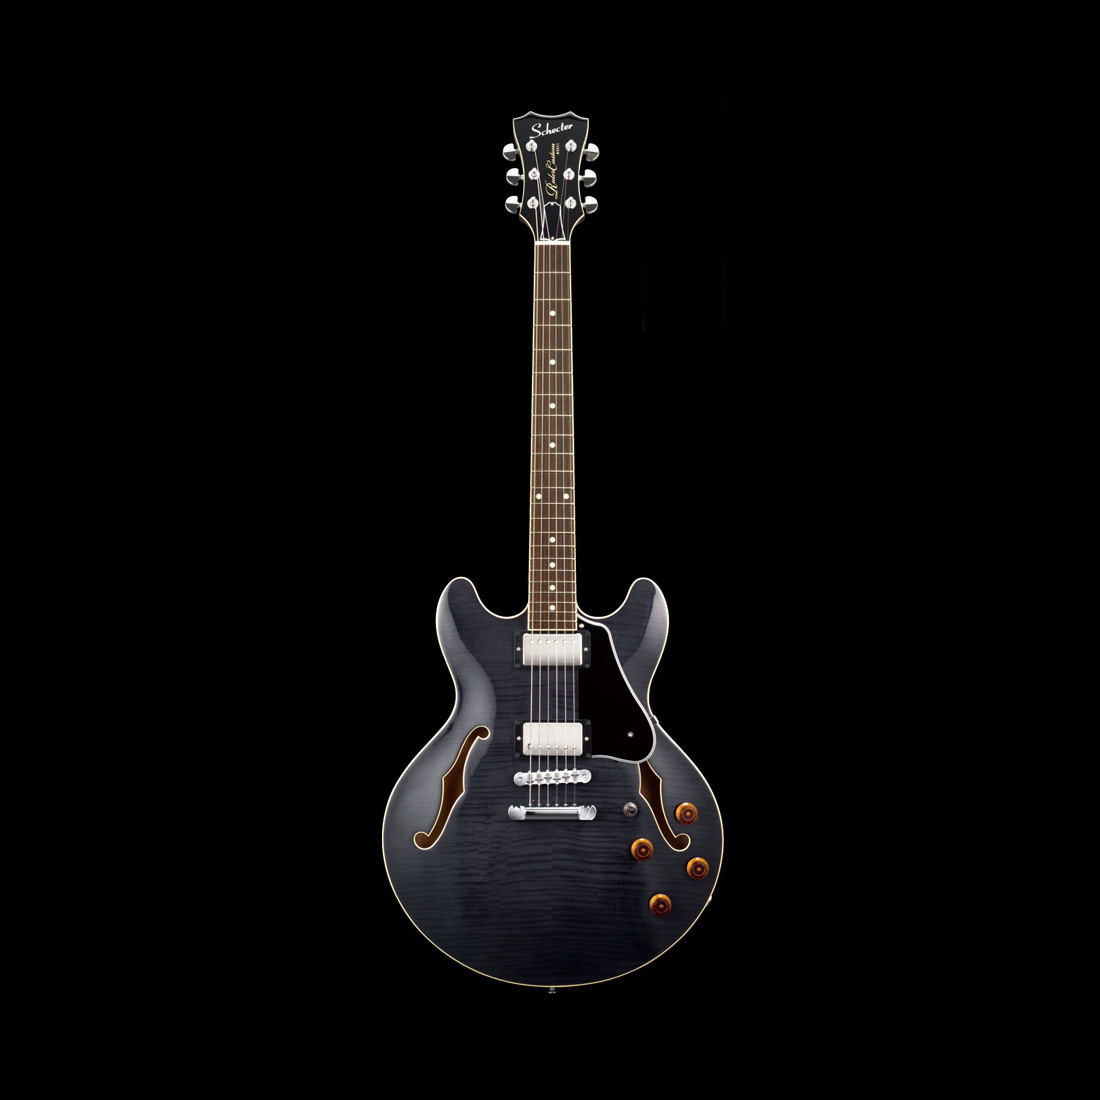 Schecter / R-SW-260 See Thru Black シェクター エレキギター 【お取り寄せ商品】